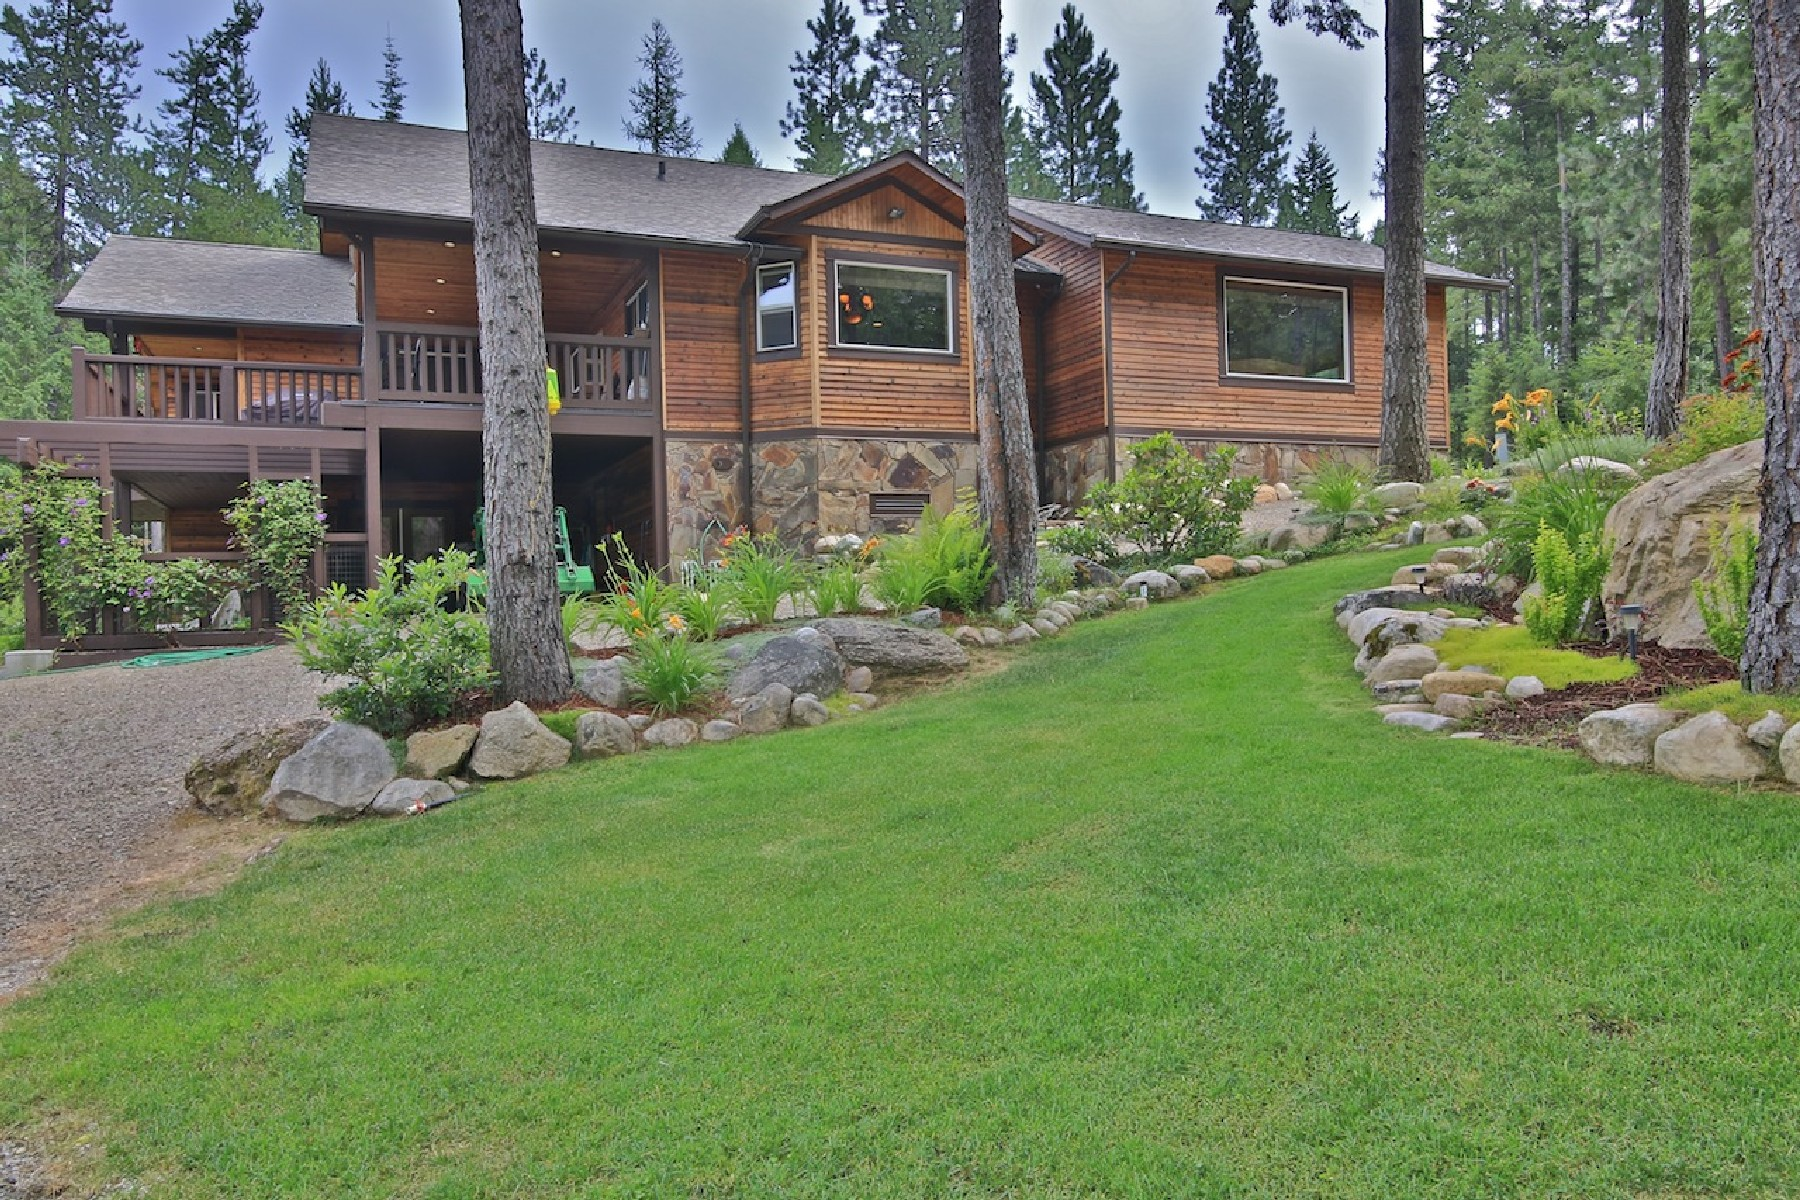 Single Family Home for Sale at Craftsman Style Luxury Home 760 Wood View Sandpoint, Idaho 83864 United States